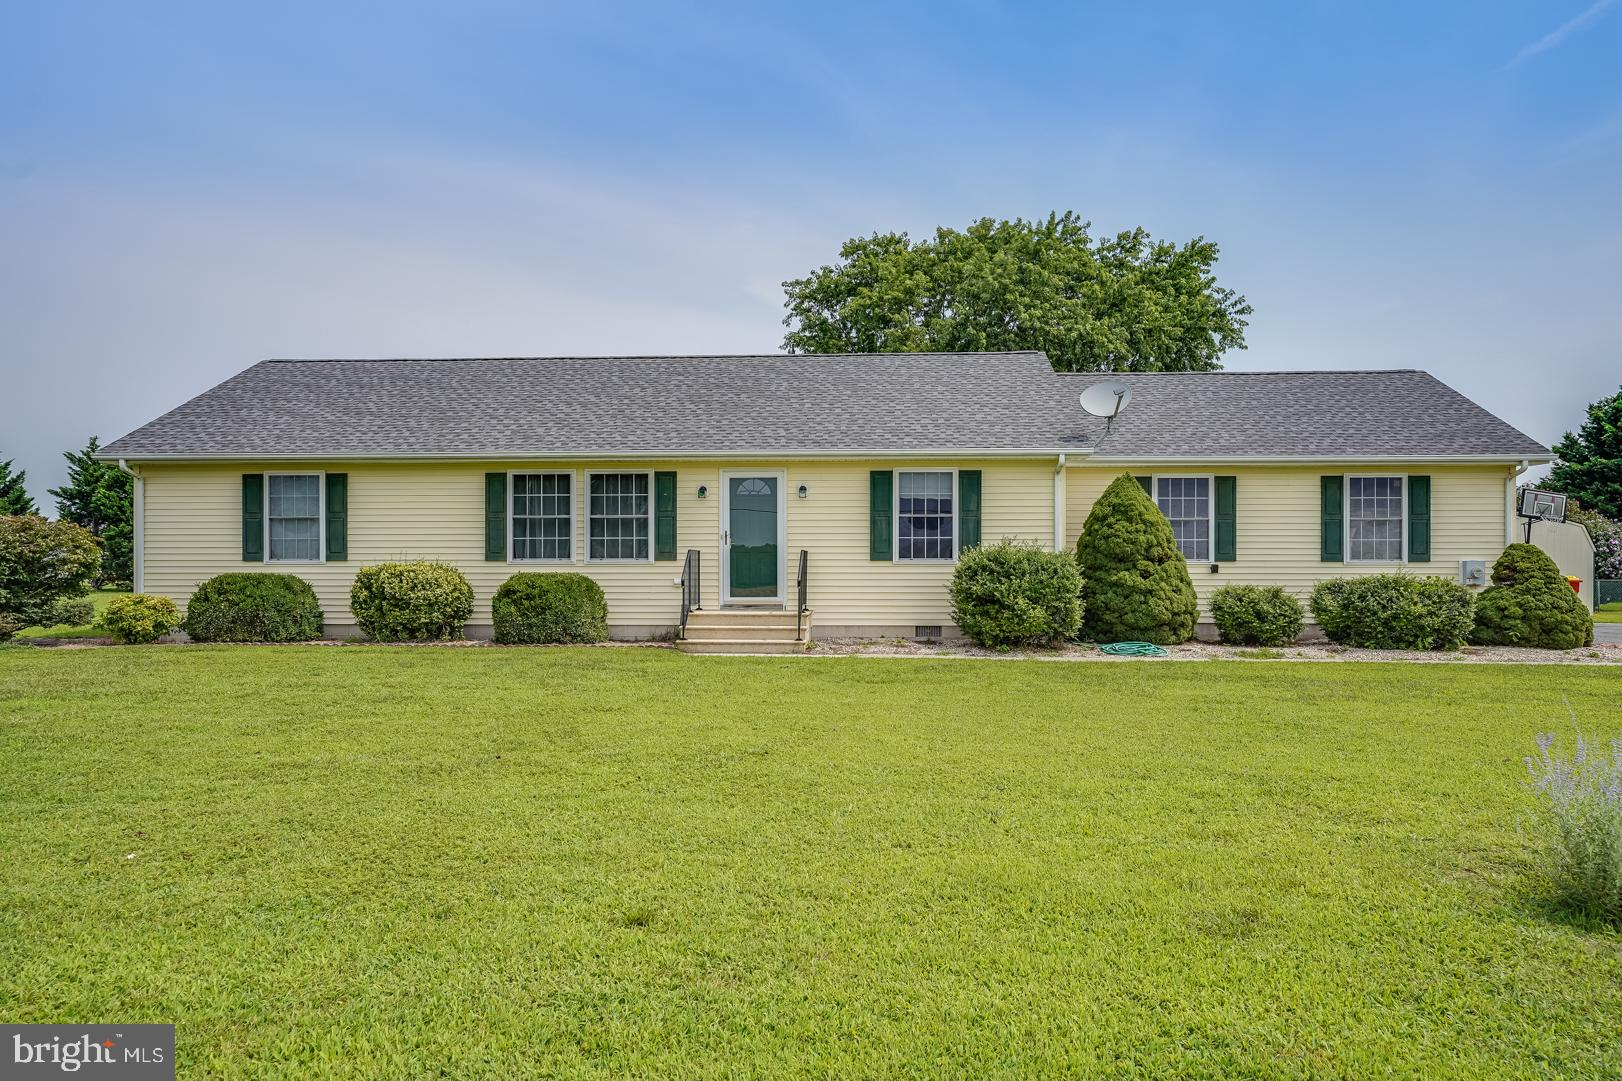 Situated between the Sussex  quadrants of Rt 1 and Rt 113, sits this well-maintained ranch home on 3